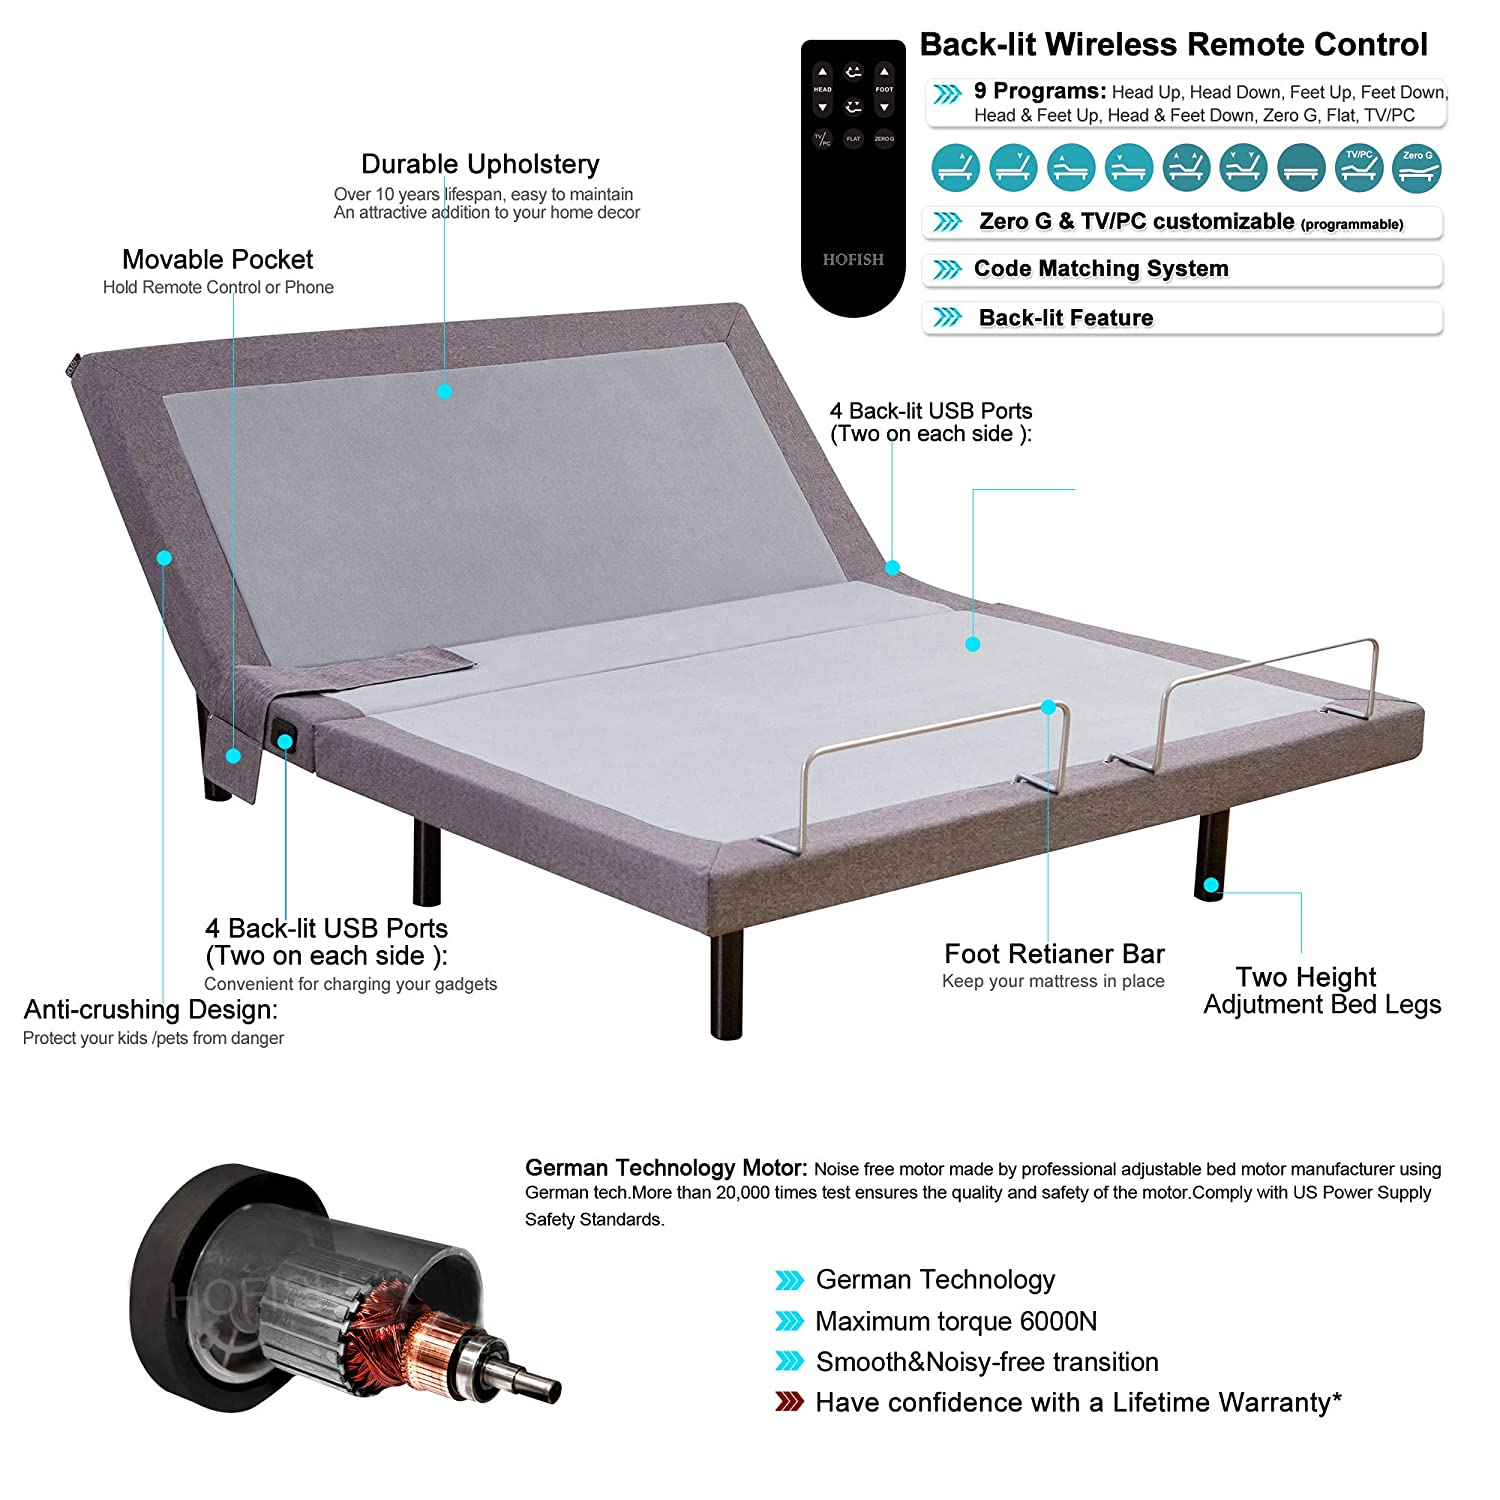 Amazon.com: HOFISH 2S Wired Mesh Layer Adjustable Bed Base - One ...